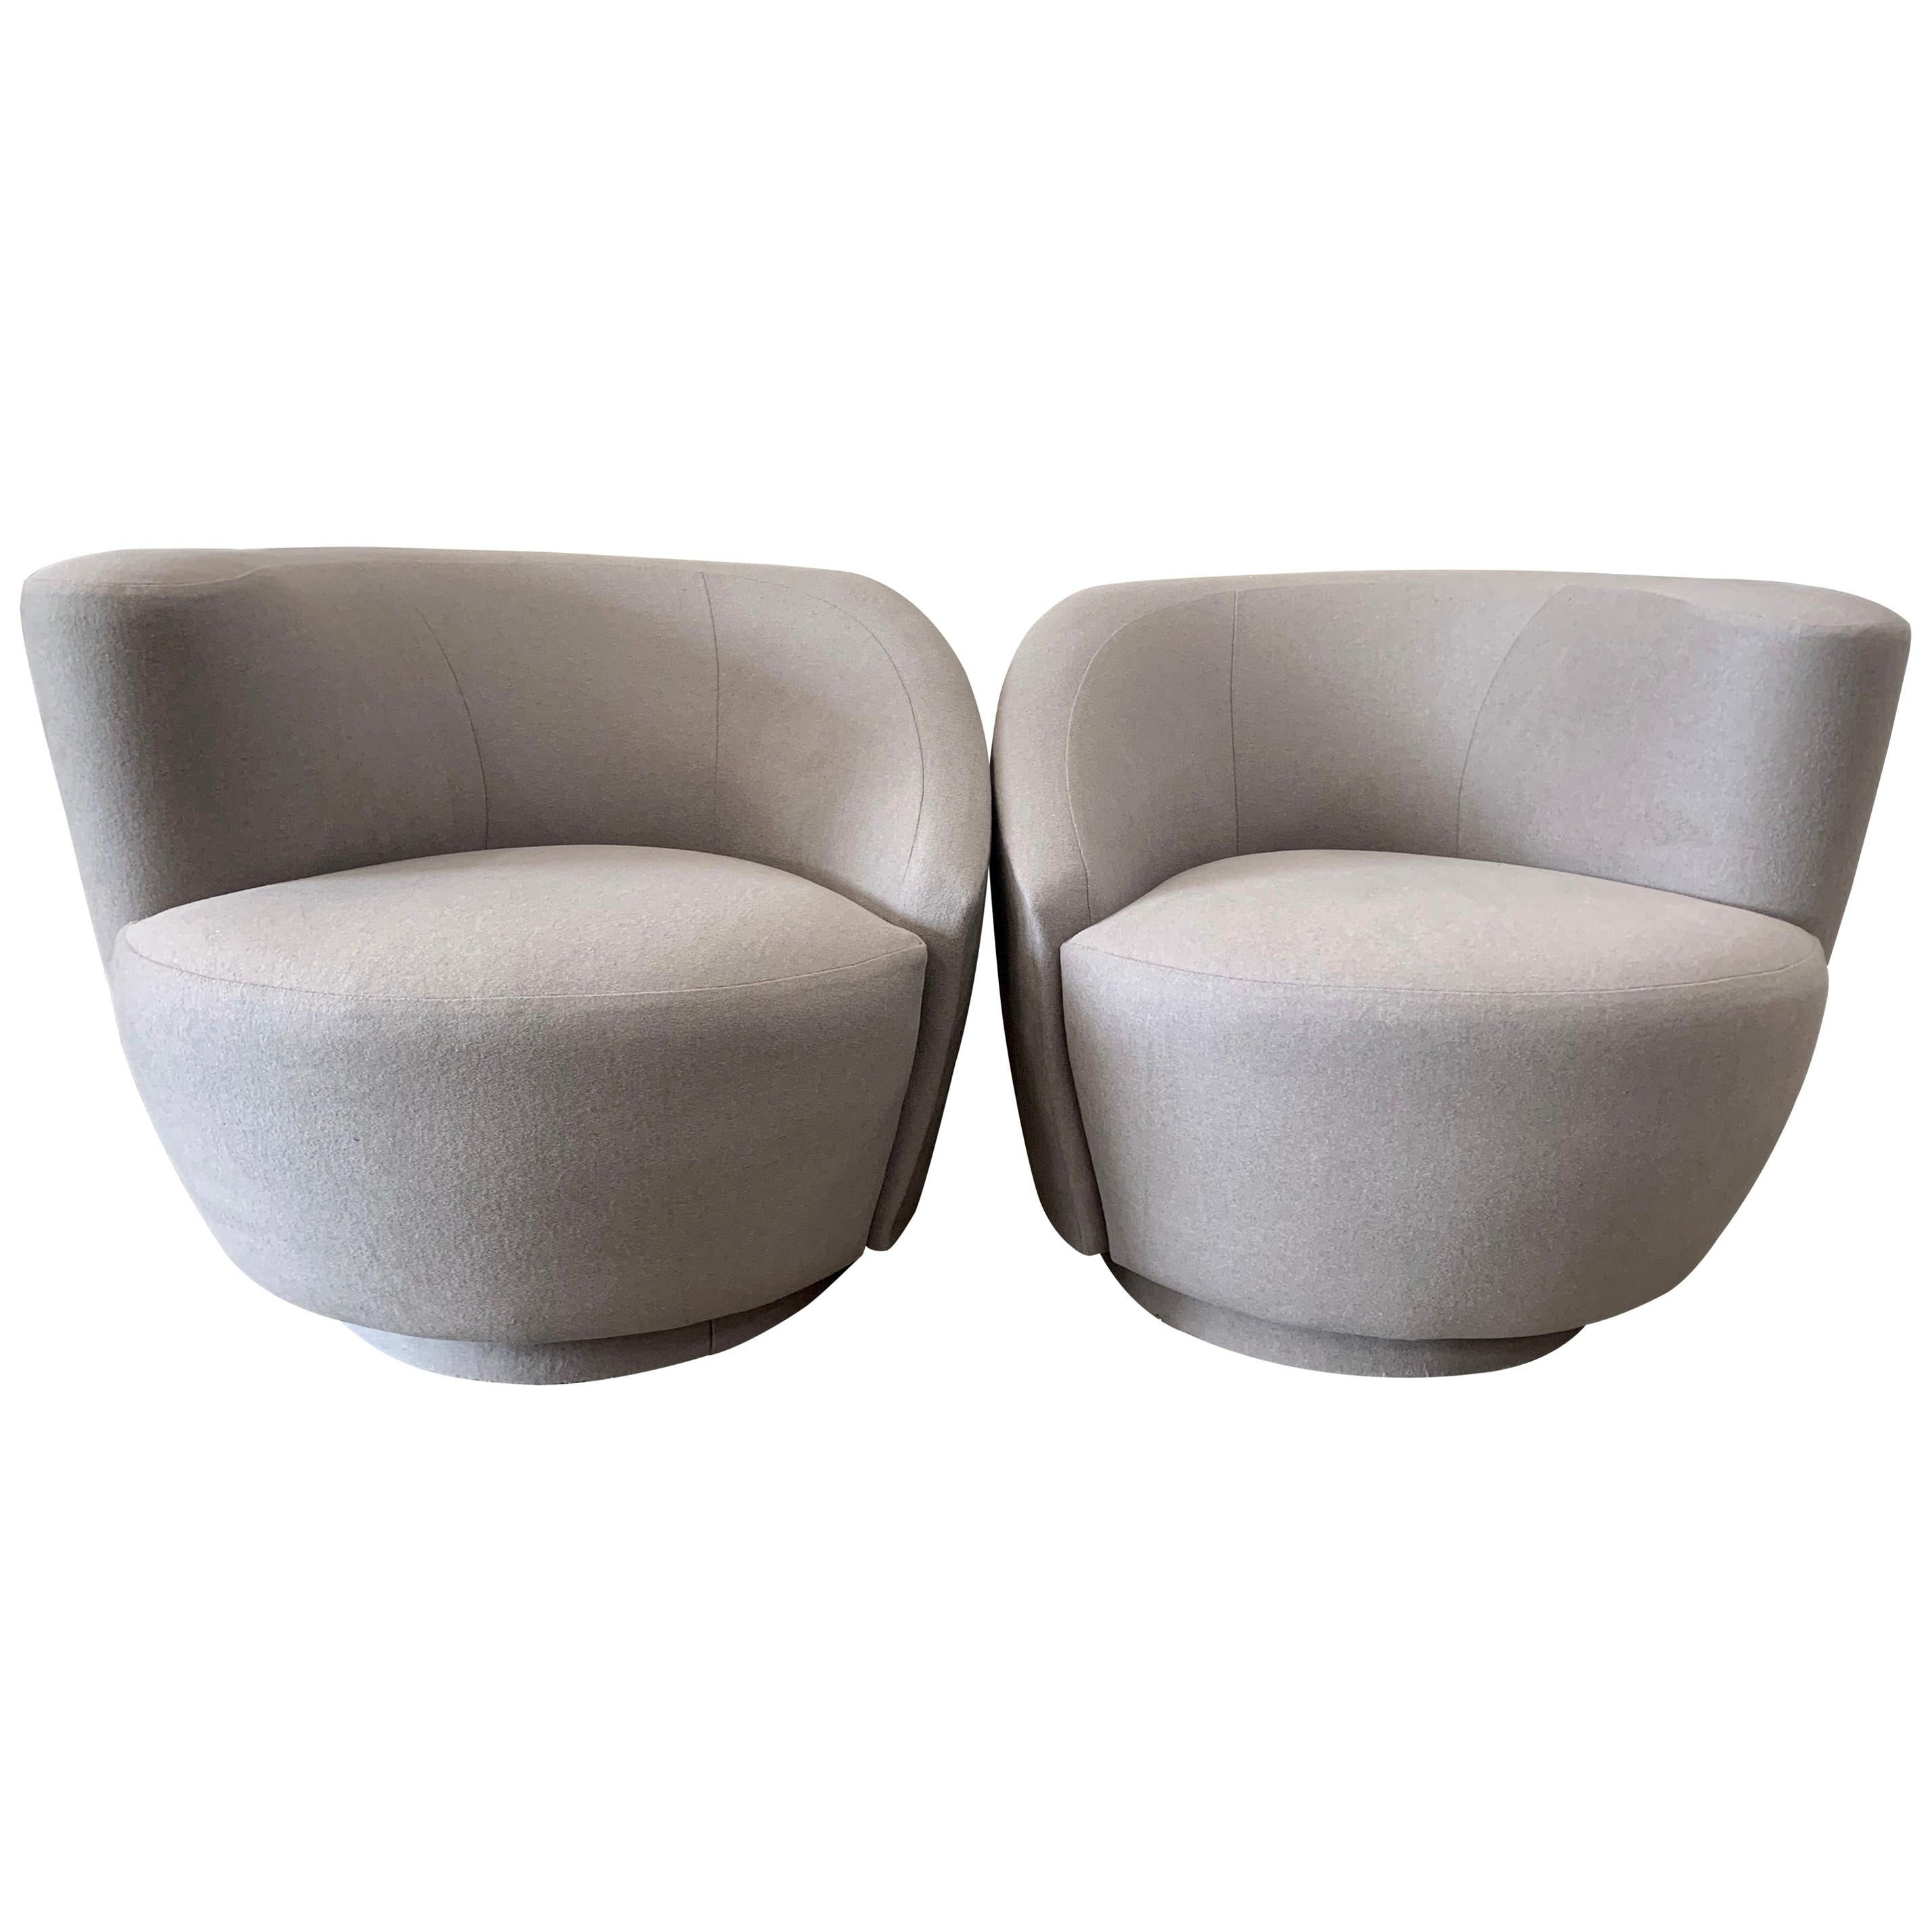 Pair of Swivel Parlor Chairs Upholstered in Light Grey Wool